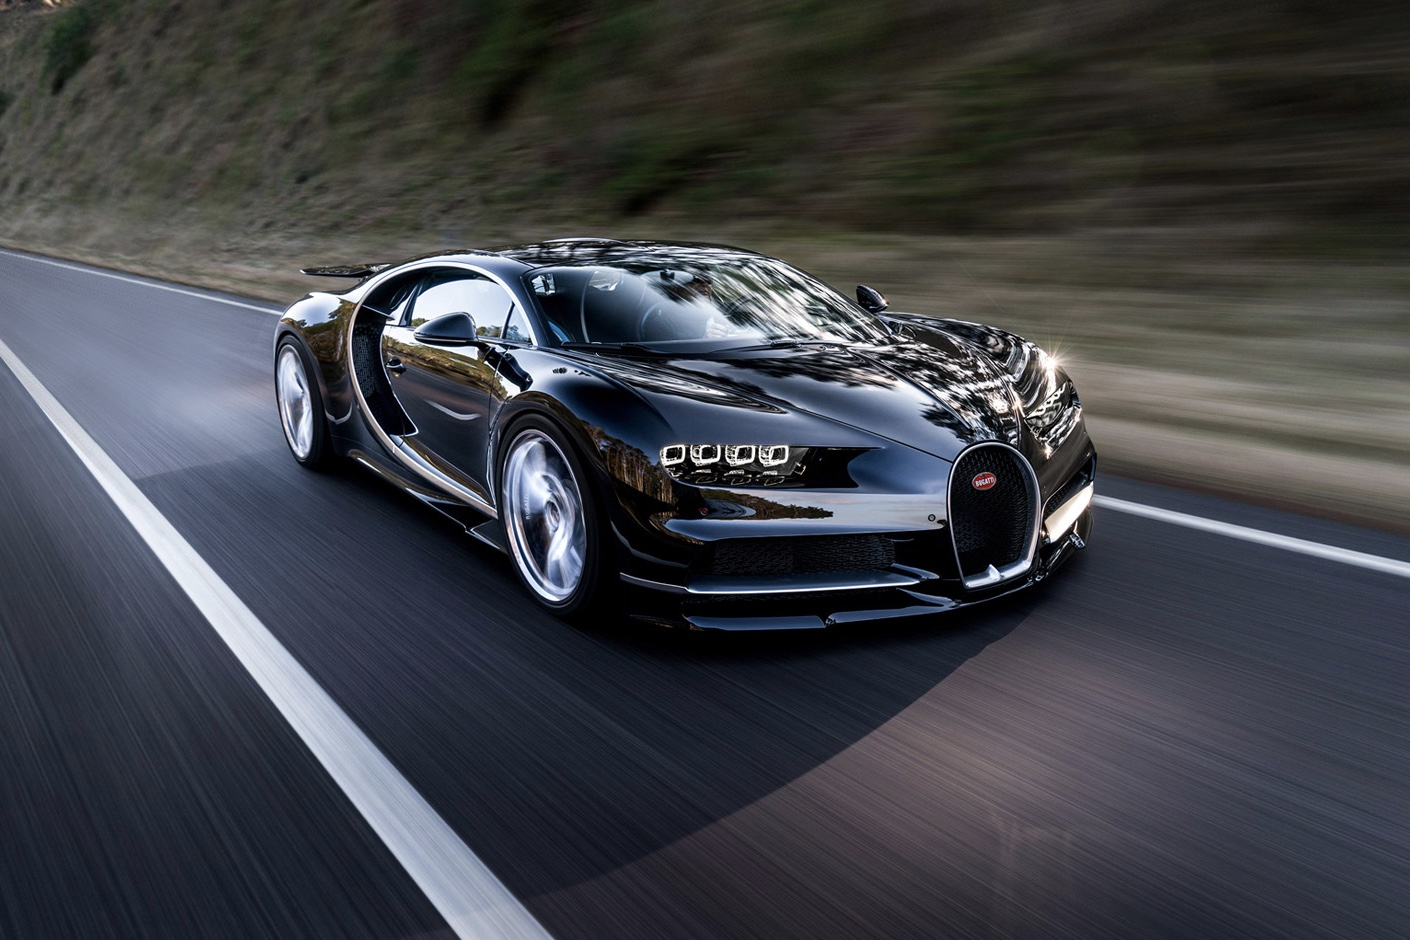 Video: Chiron does zero to 400 km/h back to zero in 41.96 seconds! 1